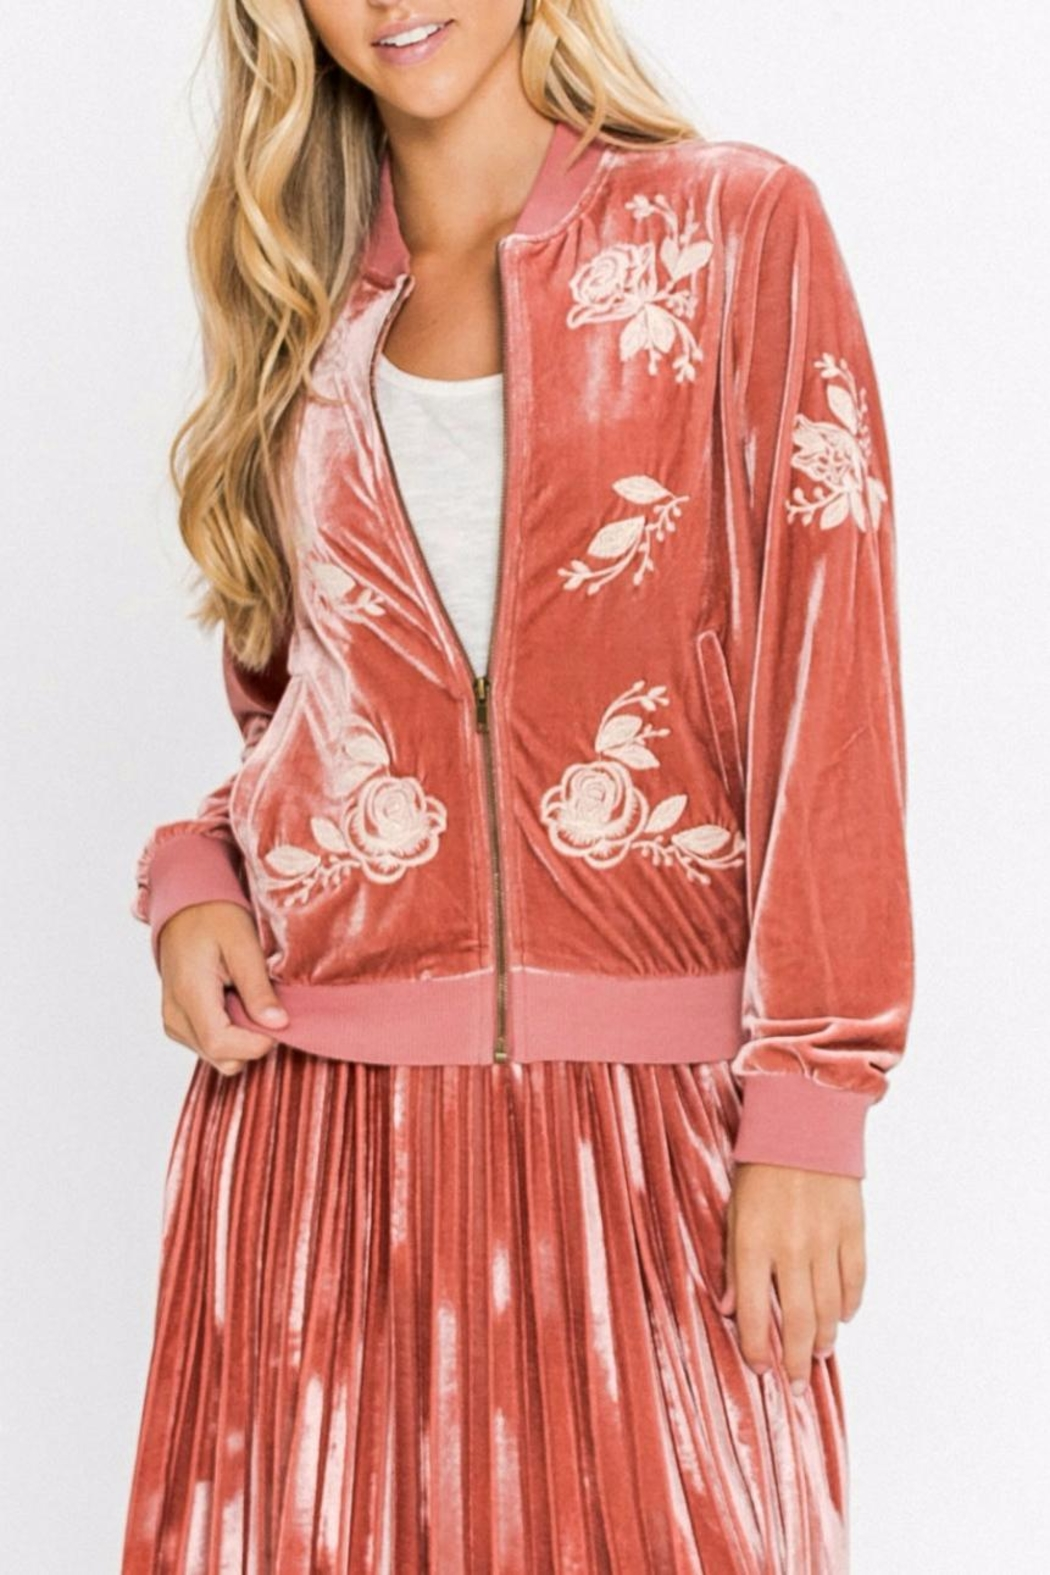 34c20e804b937 Flying Tomato Rose Velvet Bomber Jacket from Wyckoff by Bedford ...